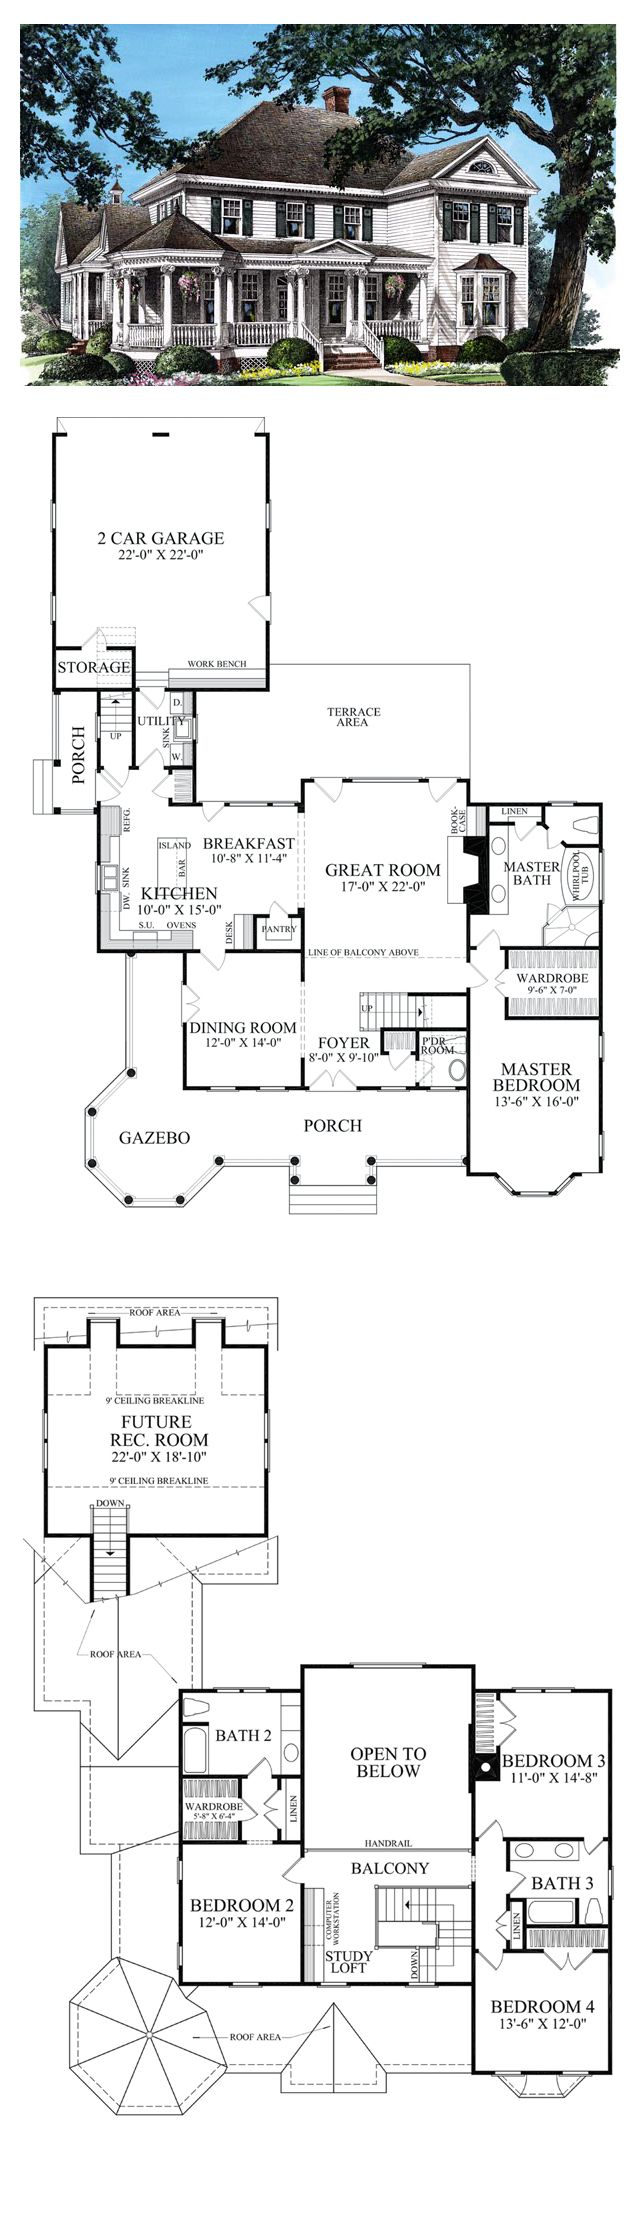 Colonial House Plan 86280 | Total Living Area: 2825 sq. ft., 4 bedrooms & 3.5 bathrooms. #colonial #houseplan